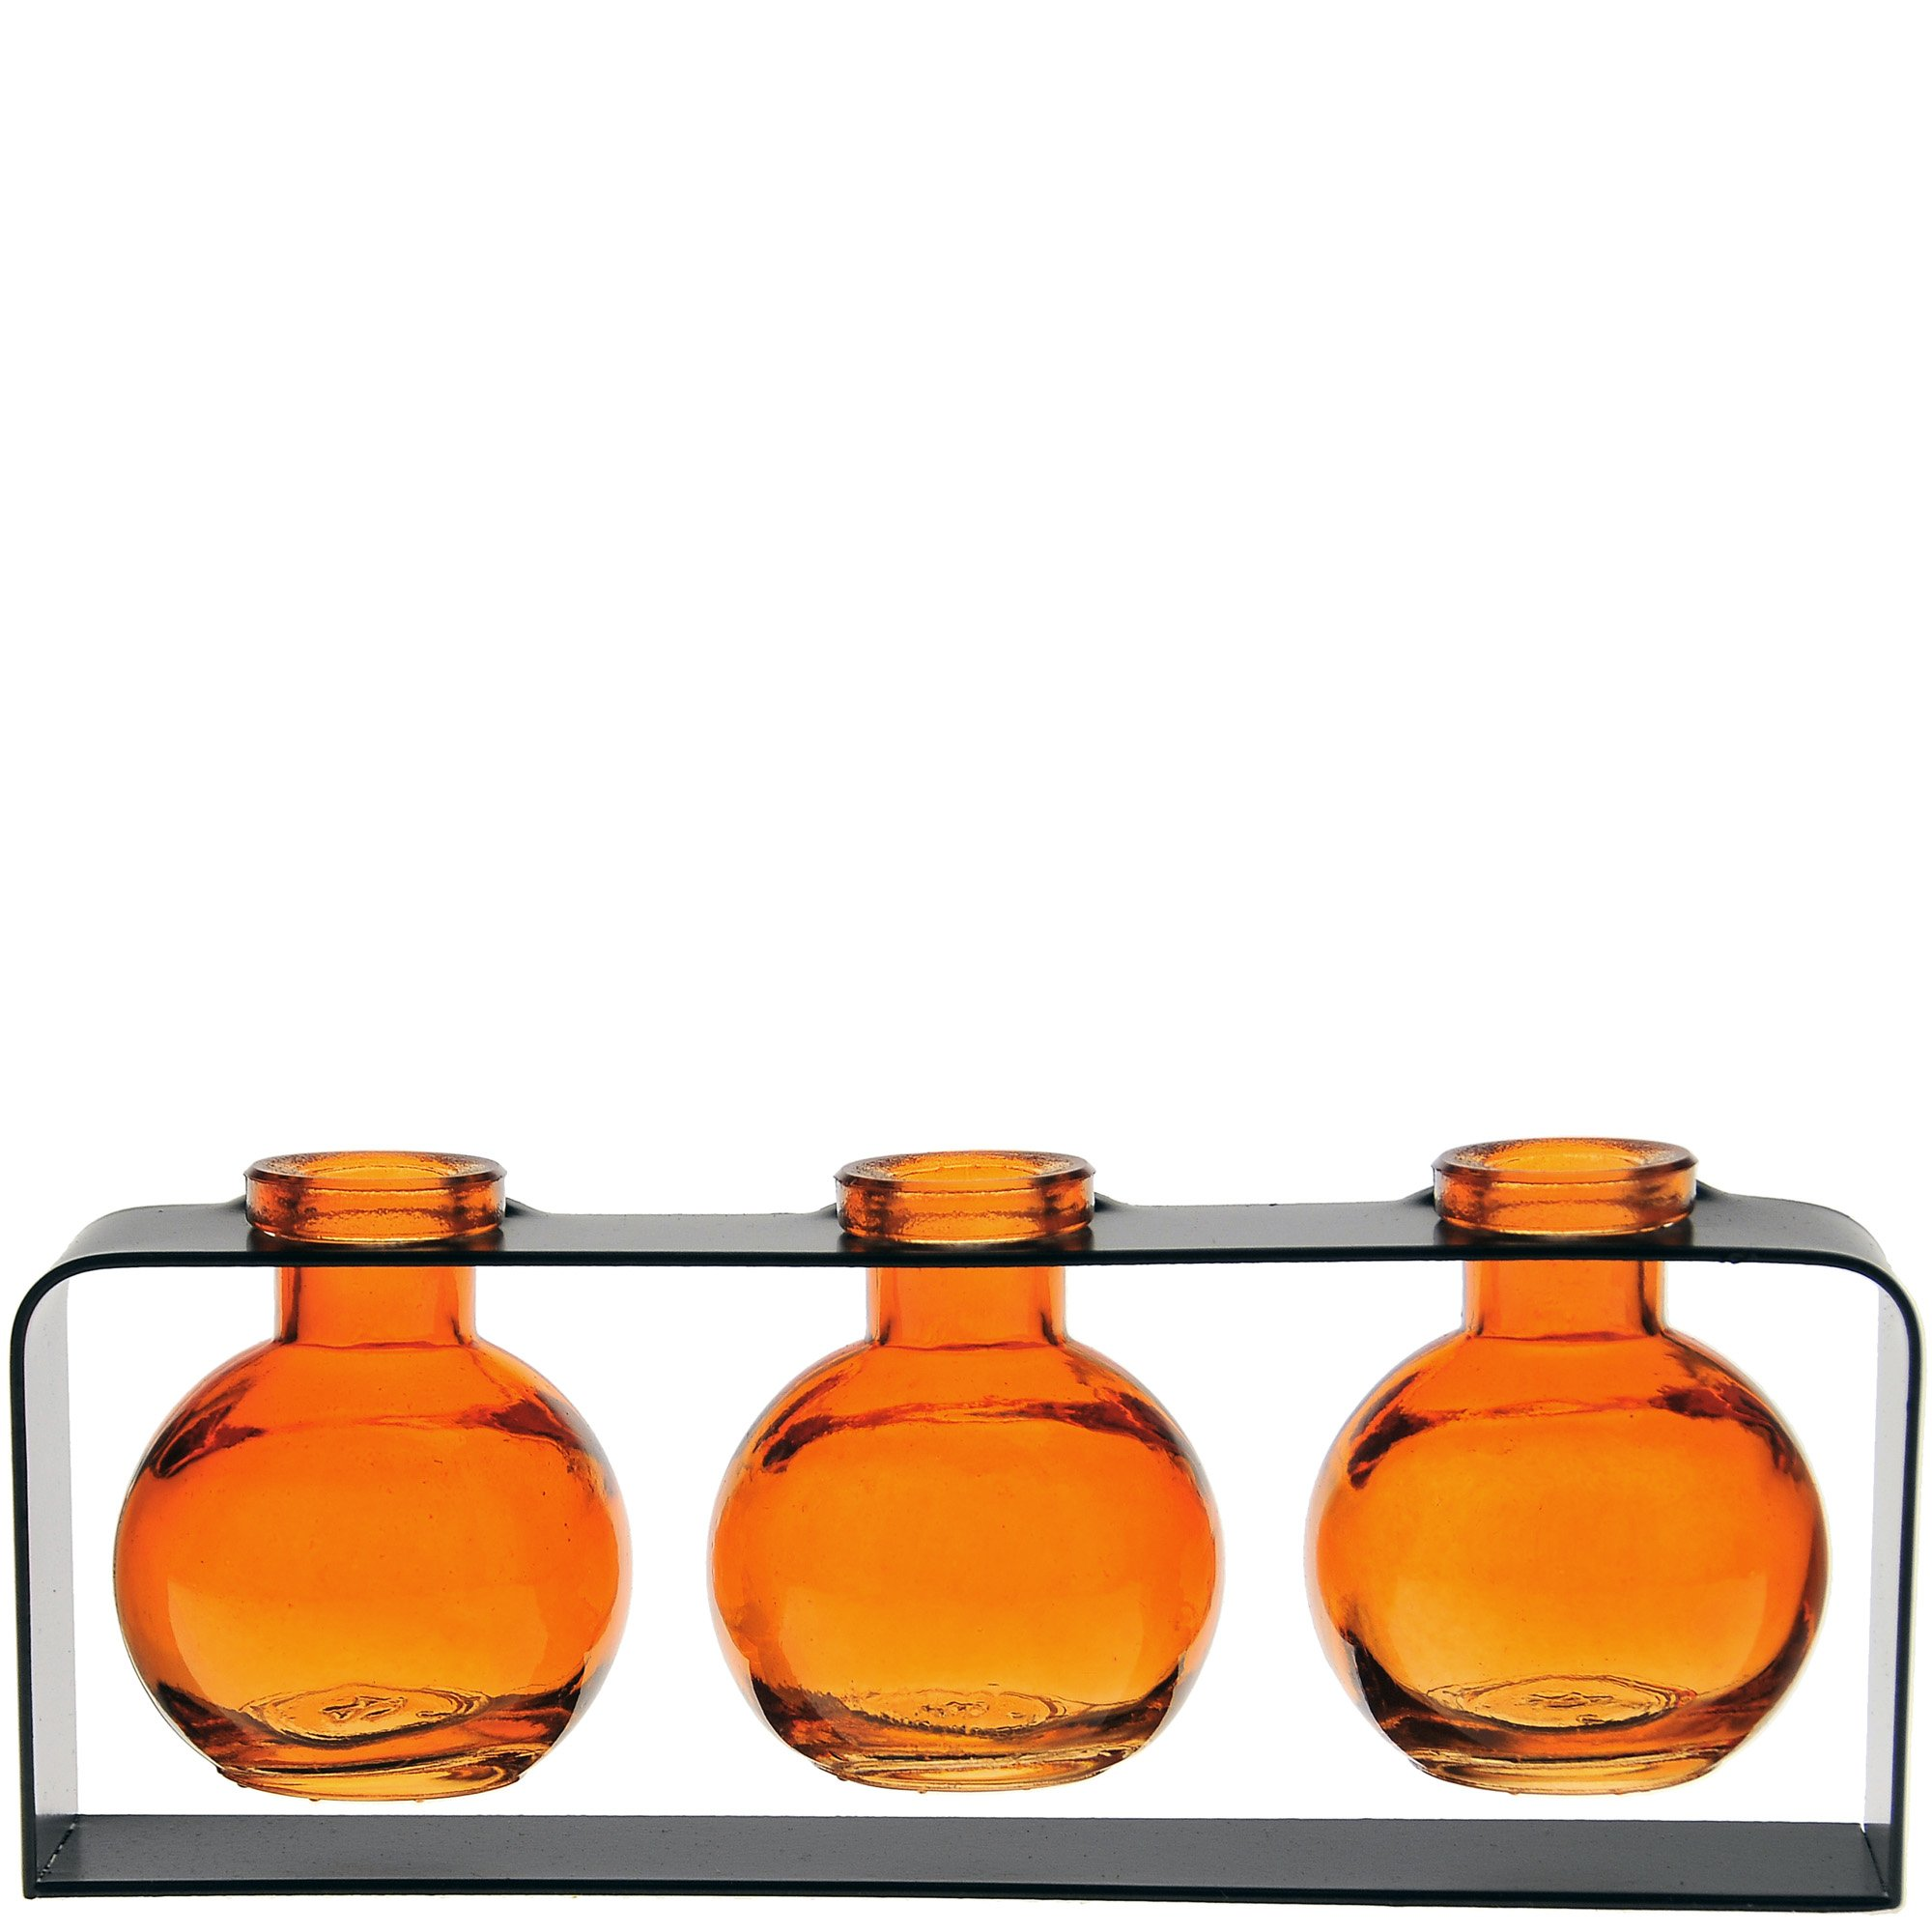 Couronne Company M507-200-08 Trivo Three Recycled Glass Vases & Metal Stand, 3 3/4'', Orange, 1 Piece